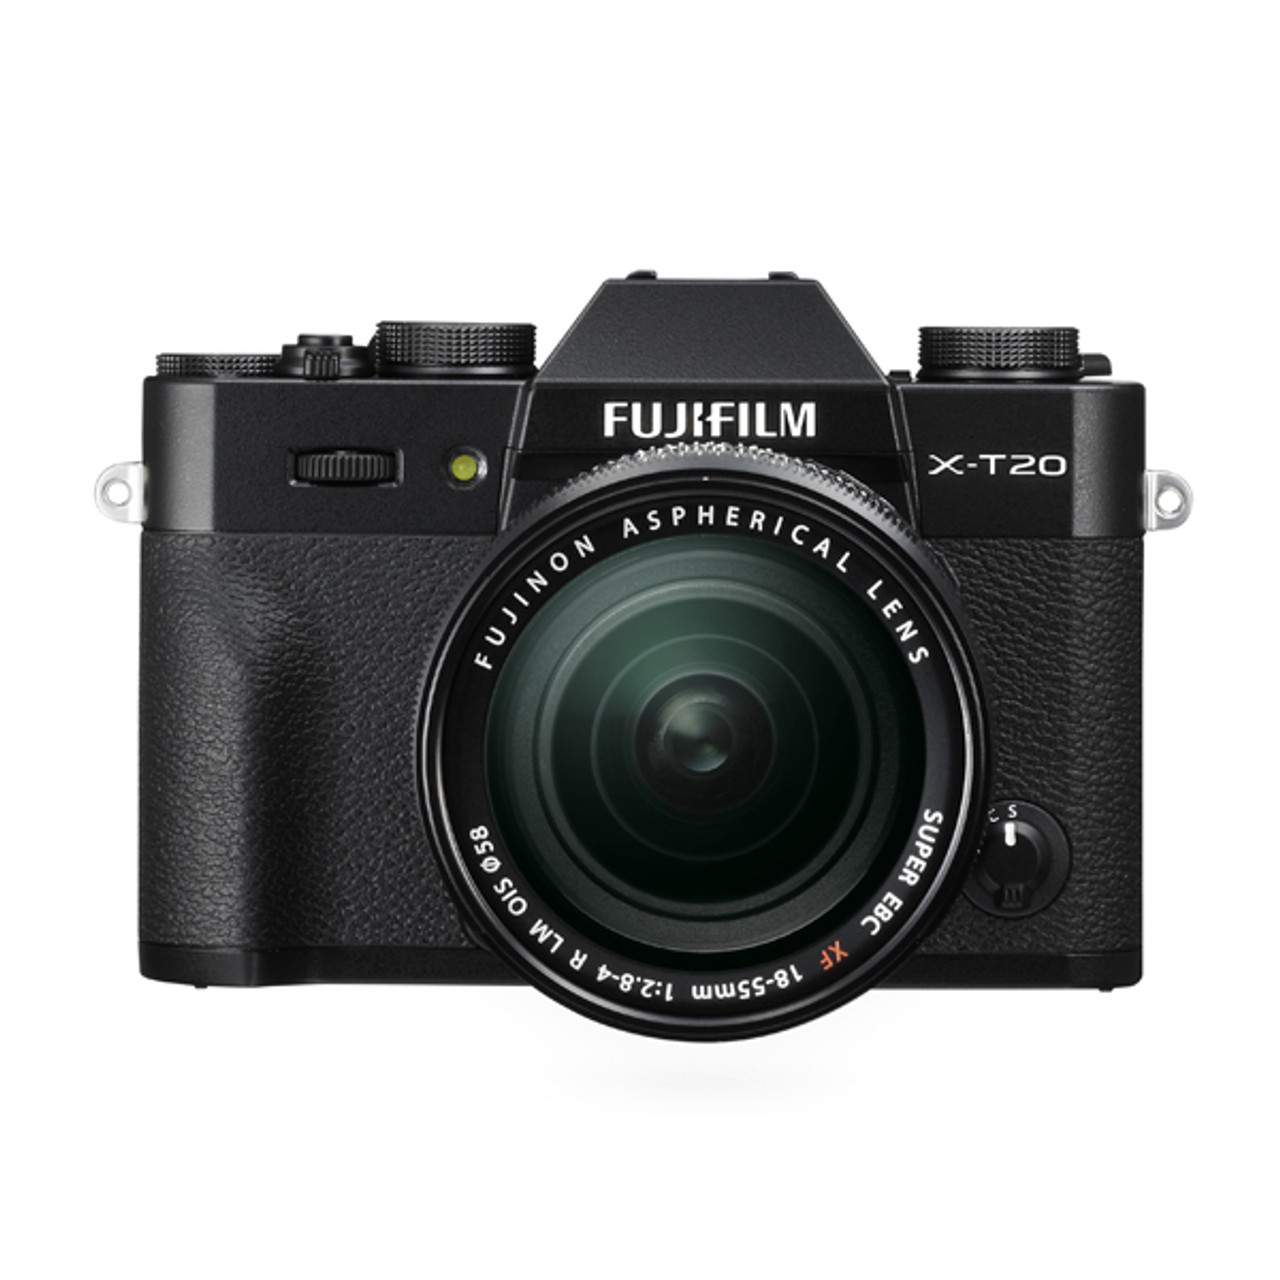 Fujifilm X-T20 18-55mm F2.8-4 R LM OIS Kit Black